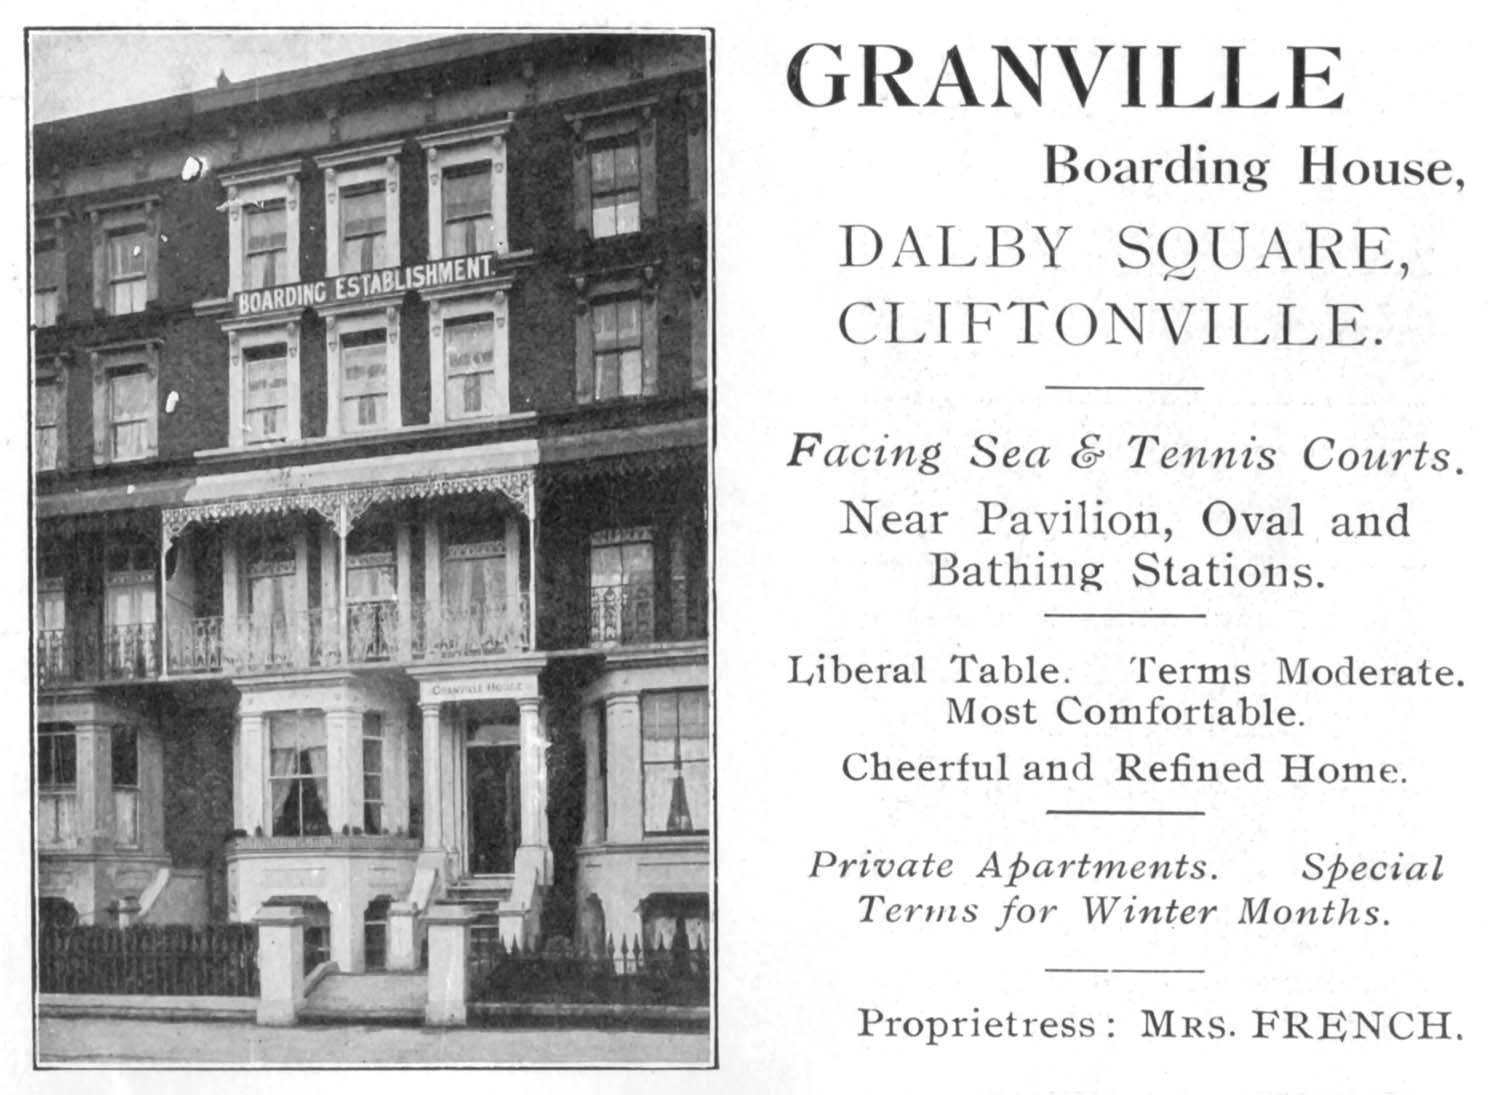 dalby square margate margate history